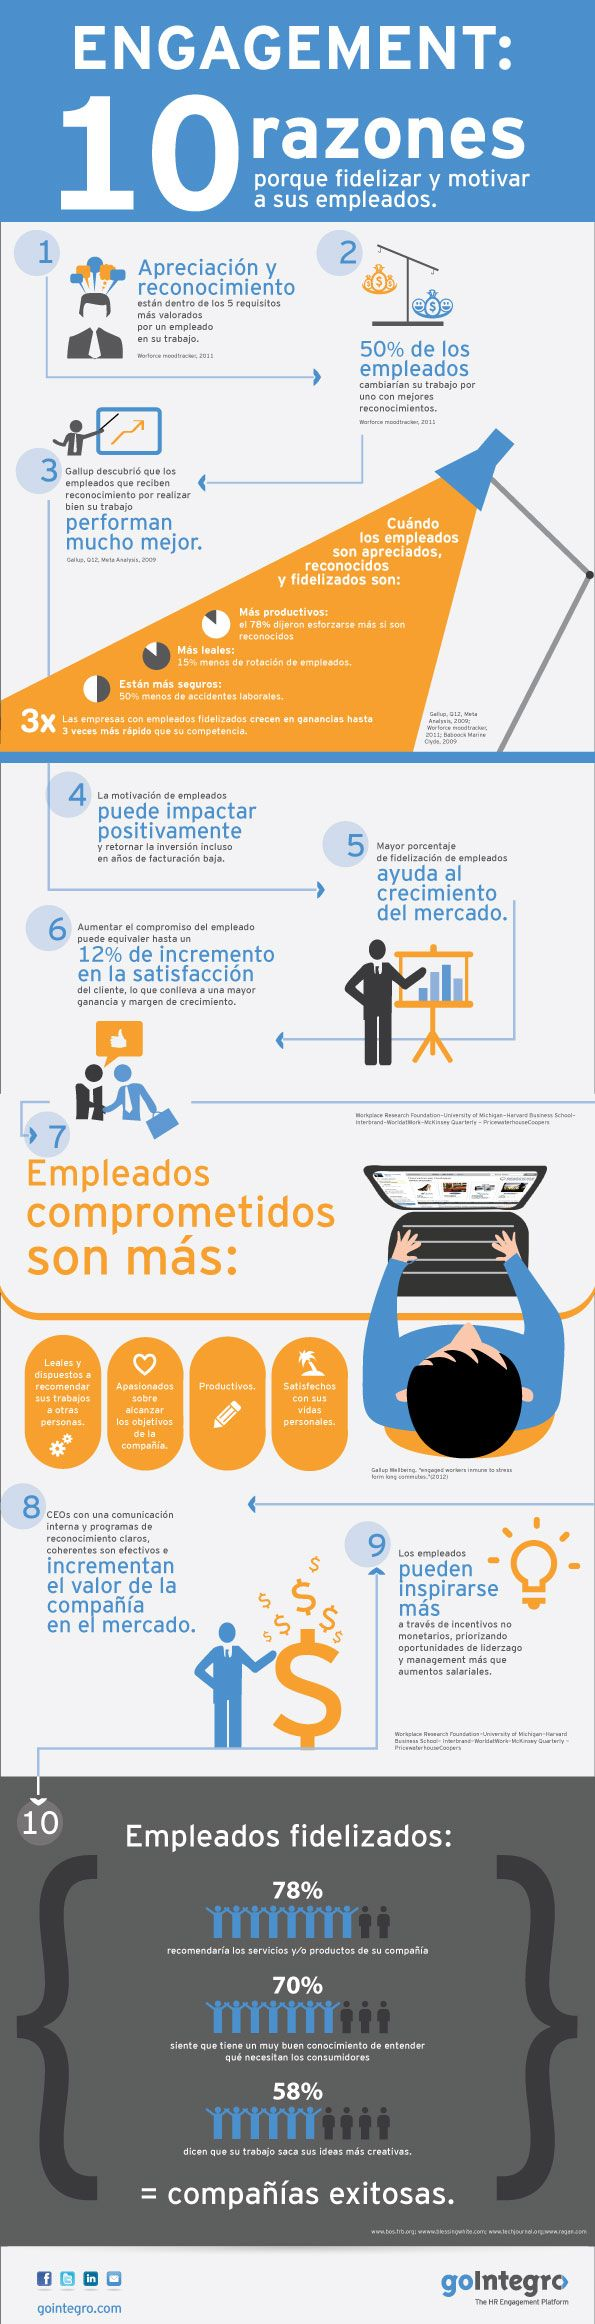 En #Socialmedia @Gfuece (Lupita Fuentes) #Marketing #Emprendedores #Tijuana #Infografia